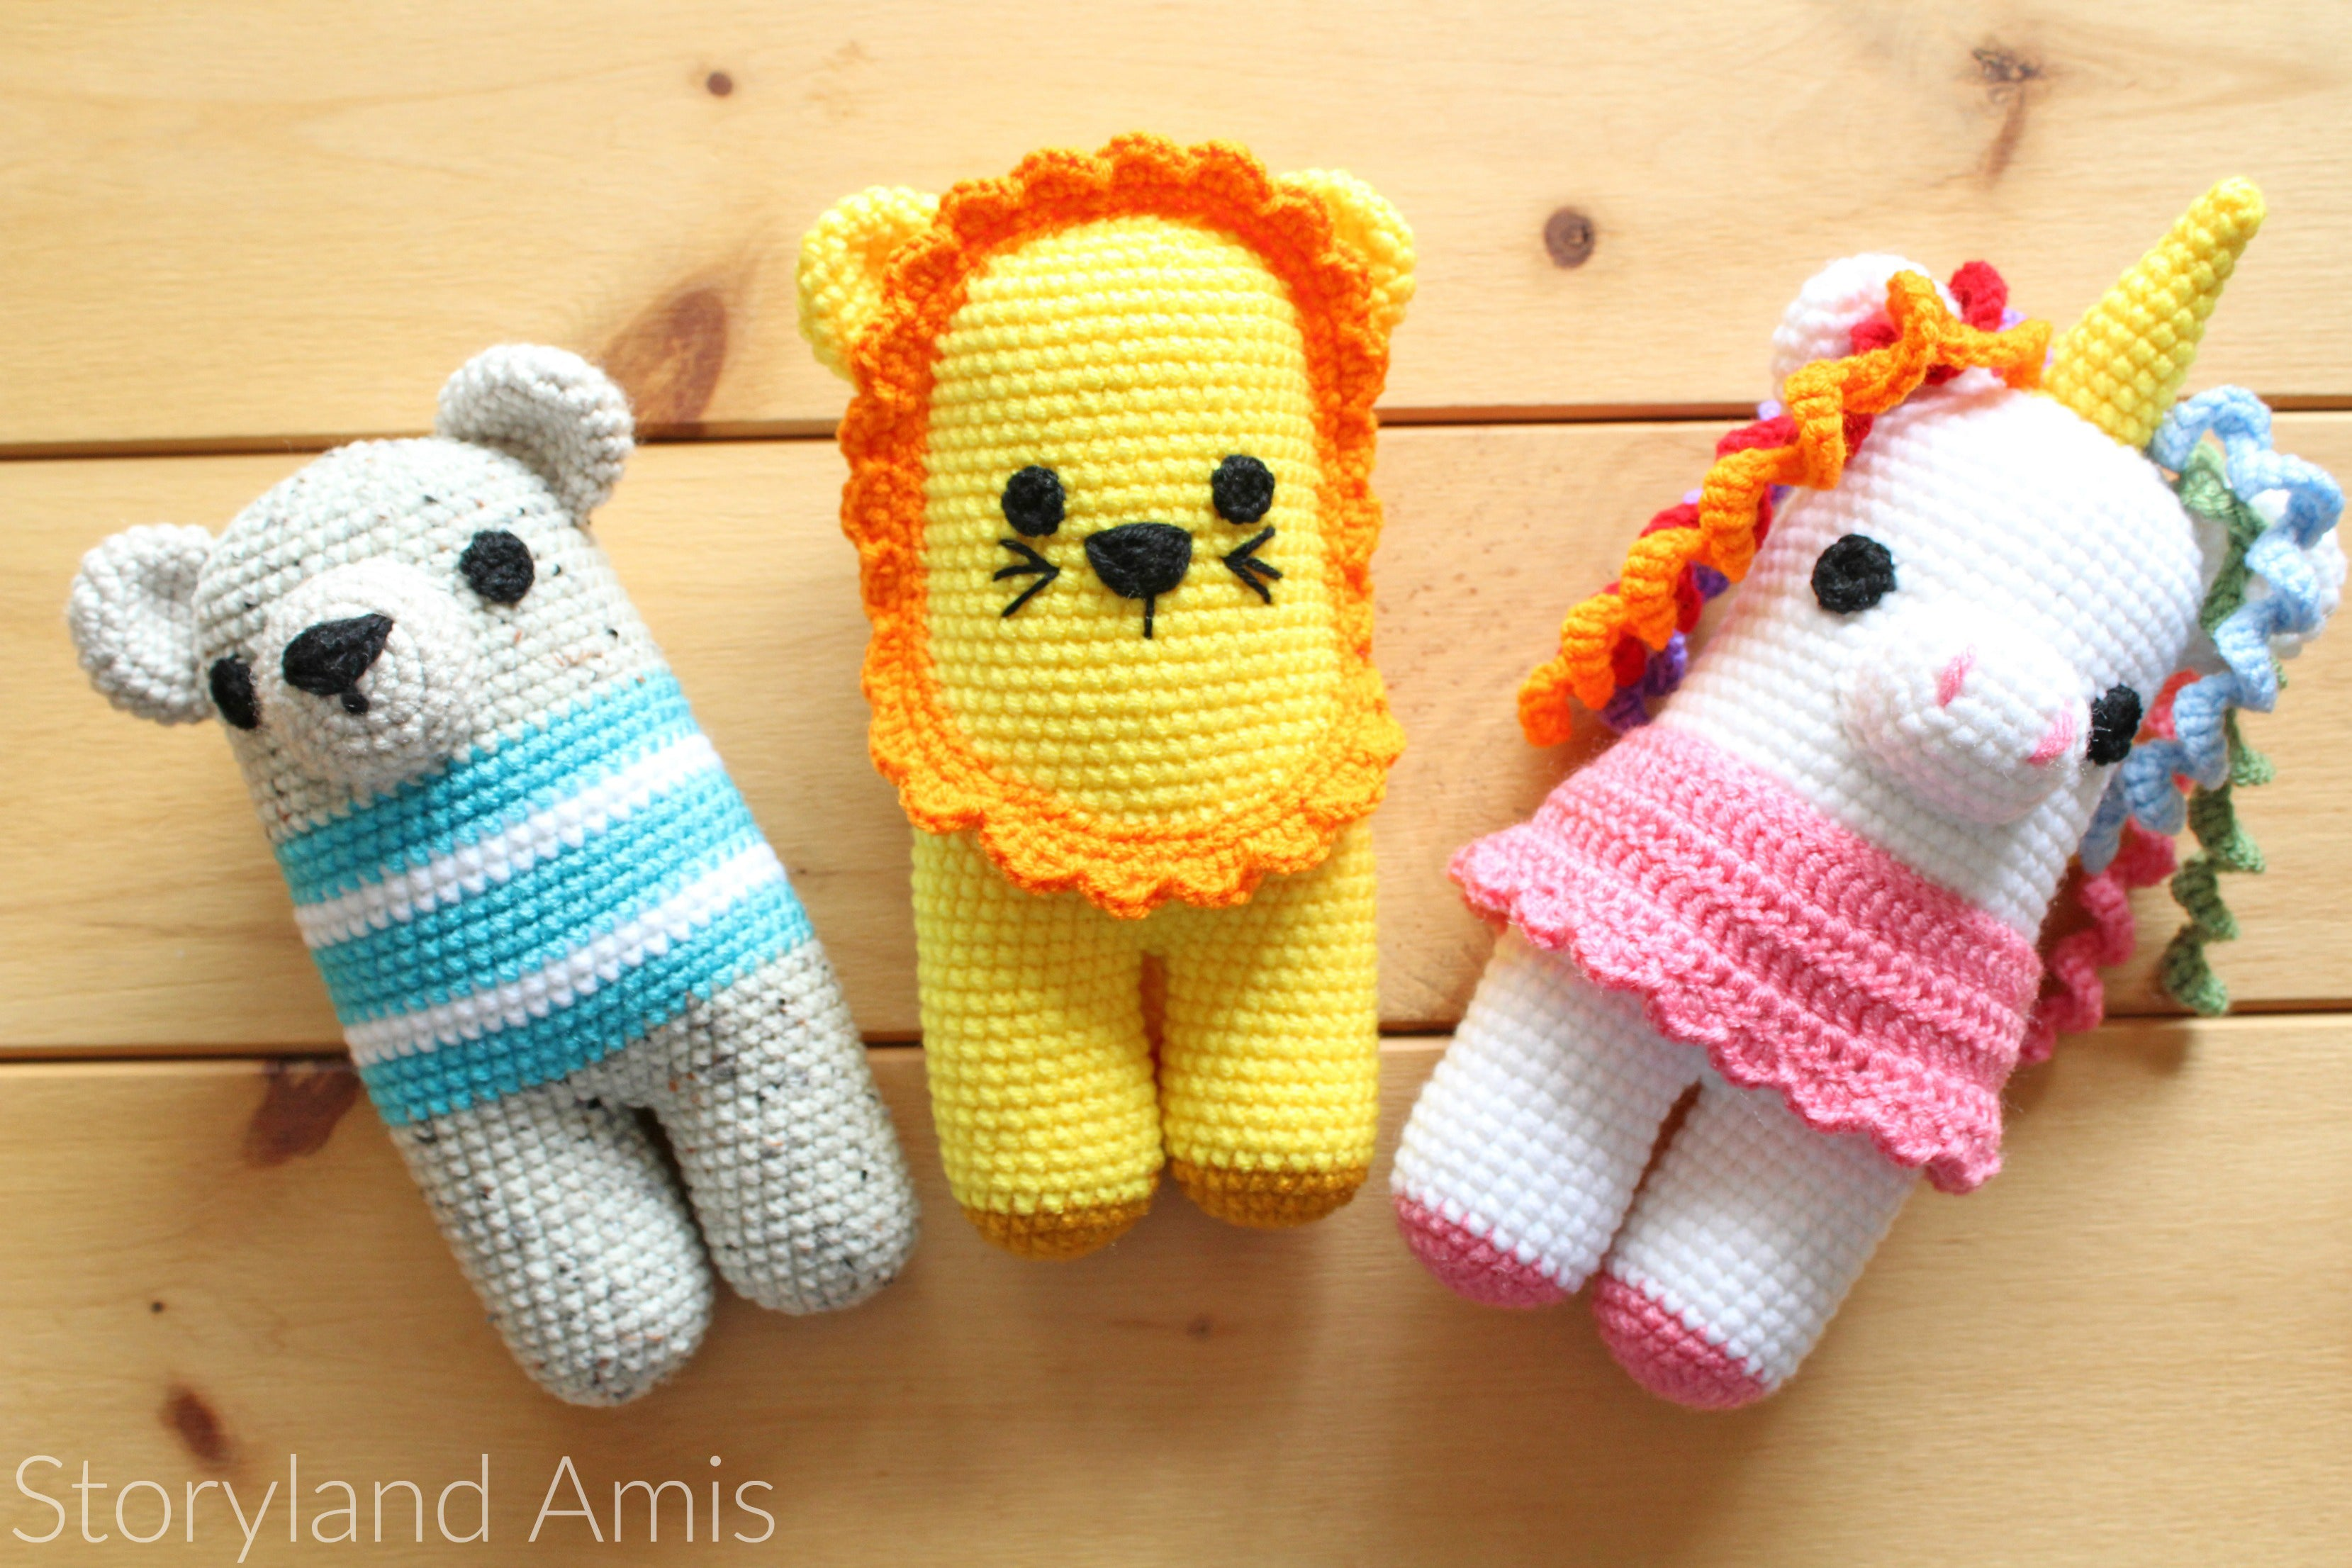 Storyland Amis, Toys for Syrian Refugee Children, Chubby Knots Crochet Interview